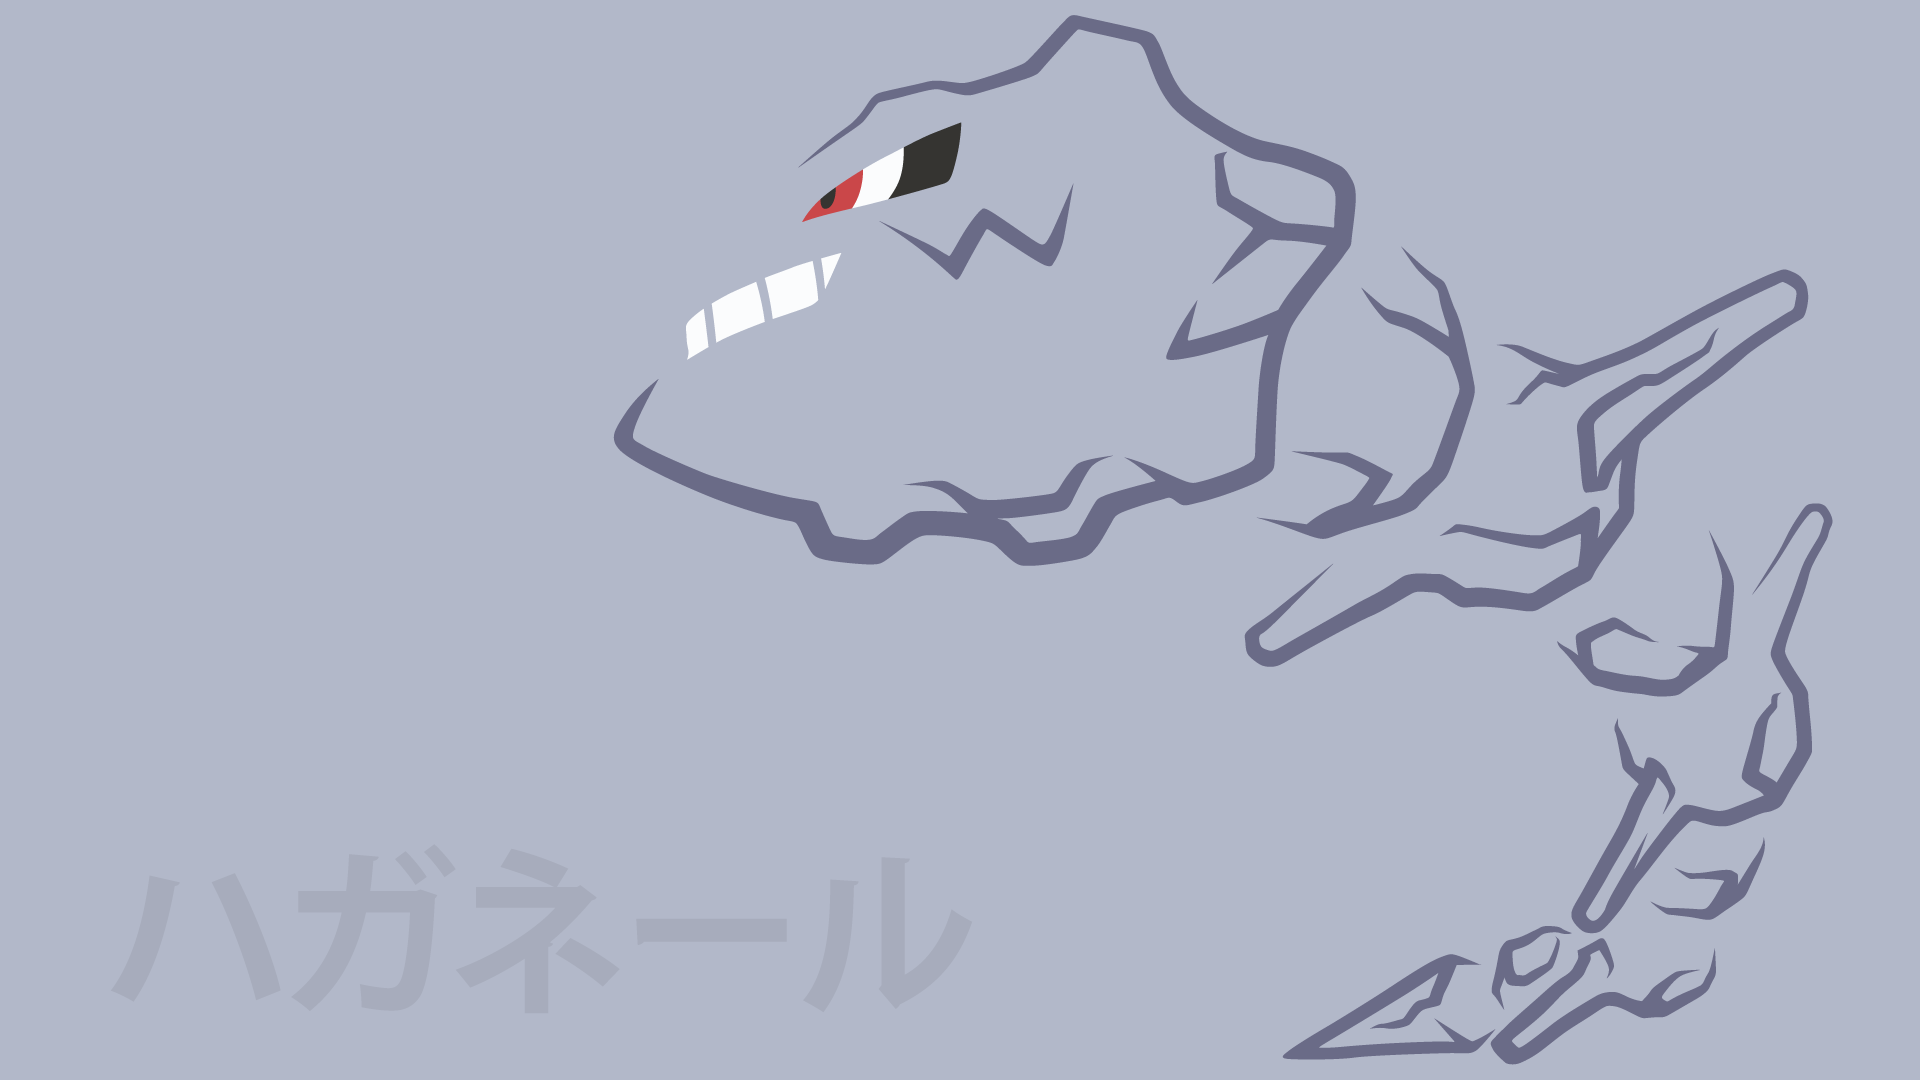 Steelix by DannyMyBrother on DeviantArt